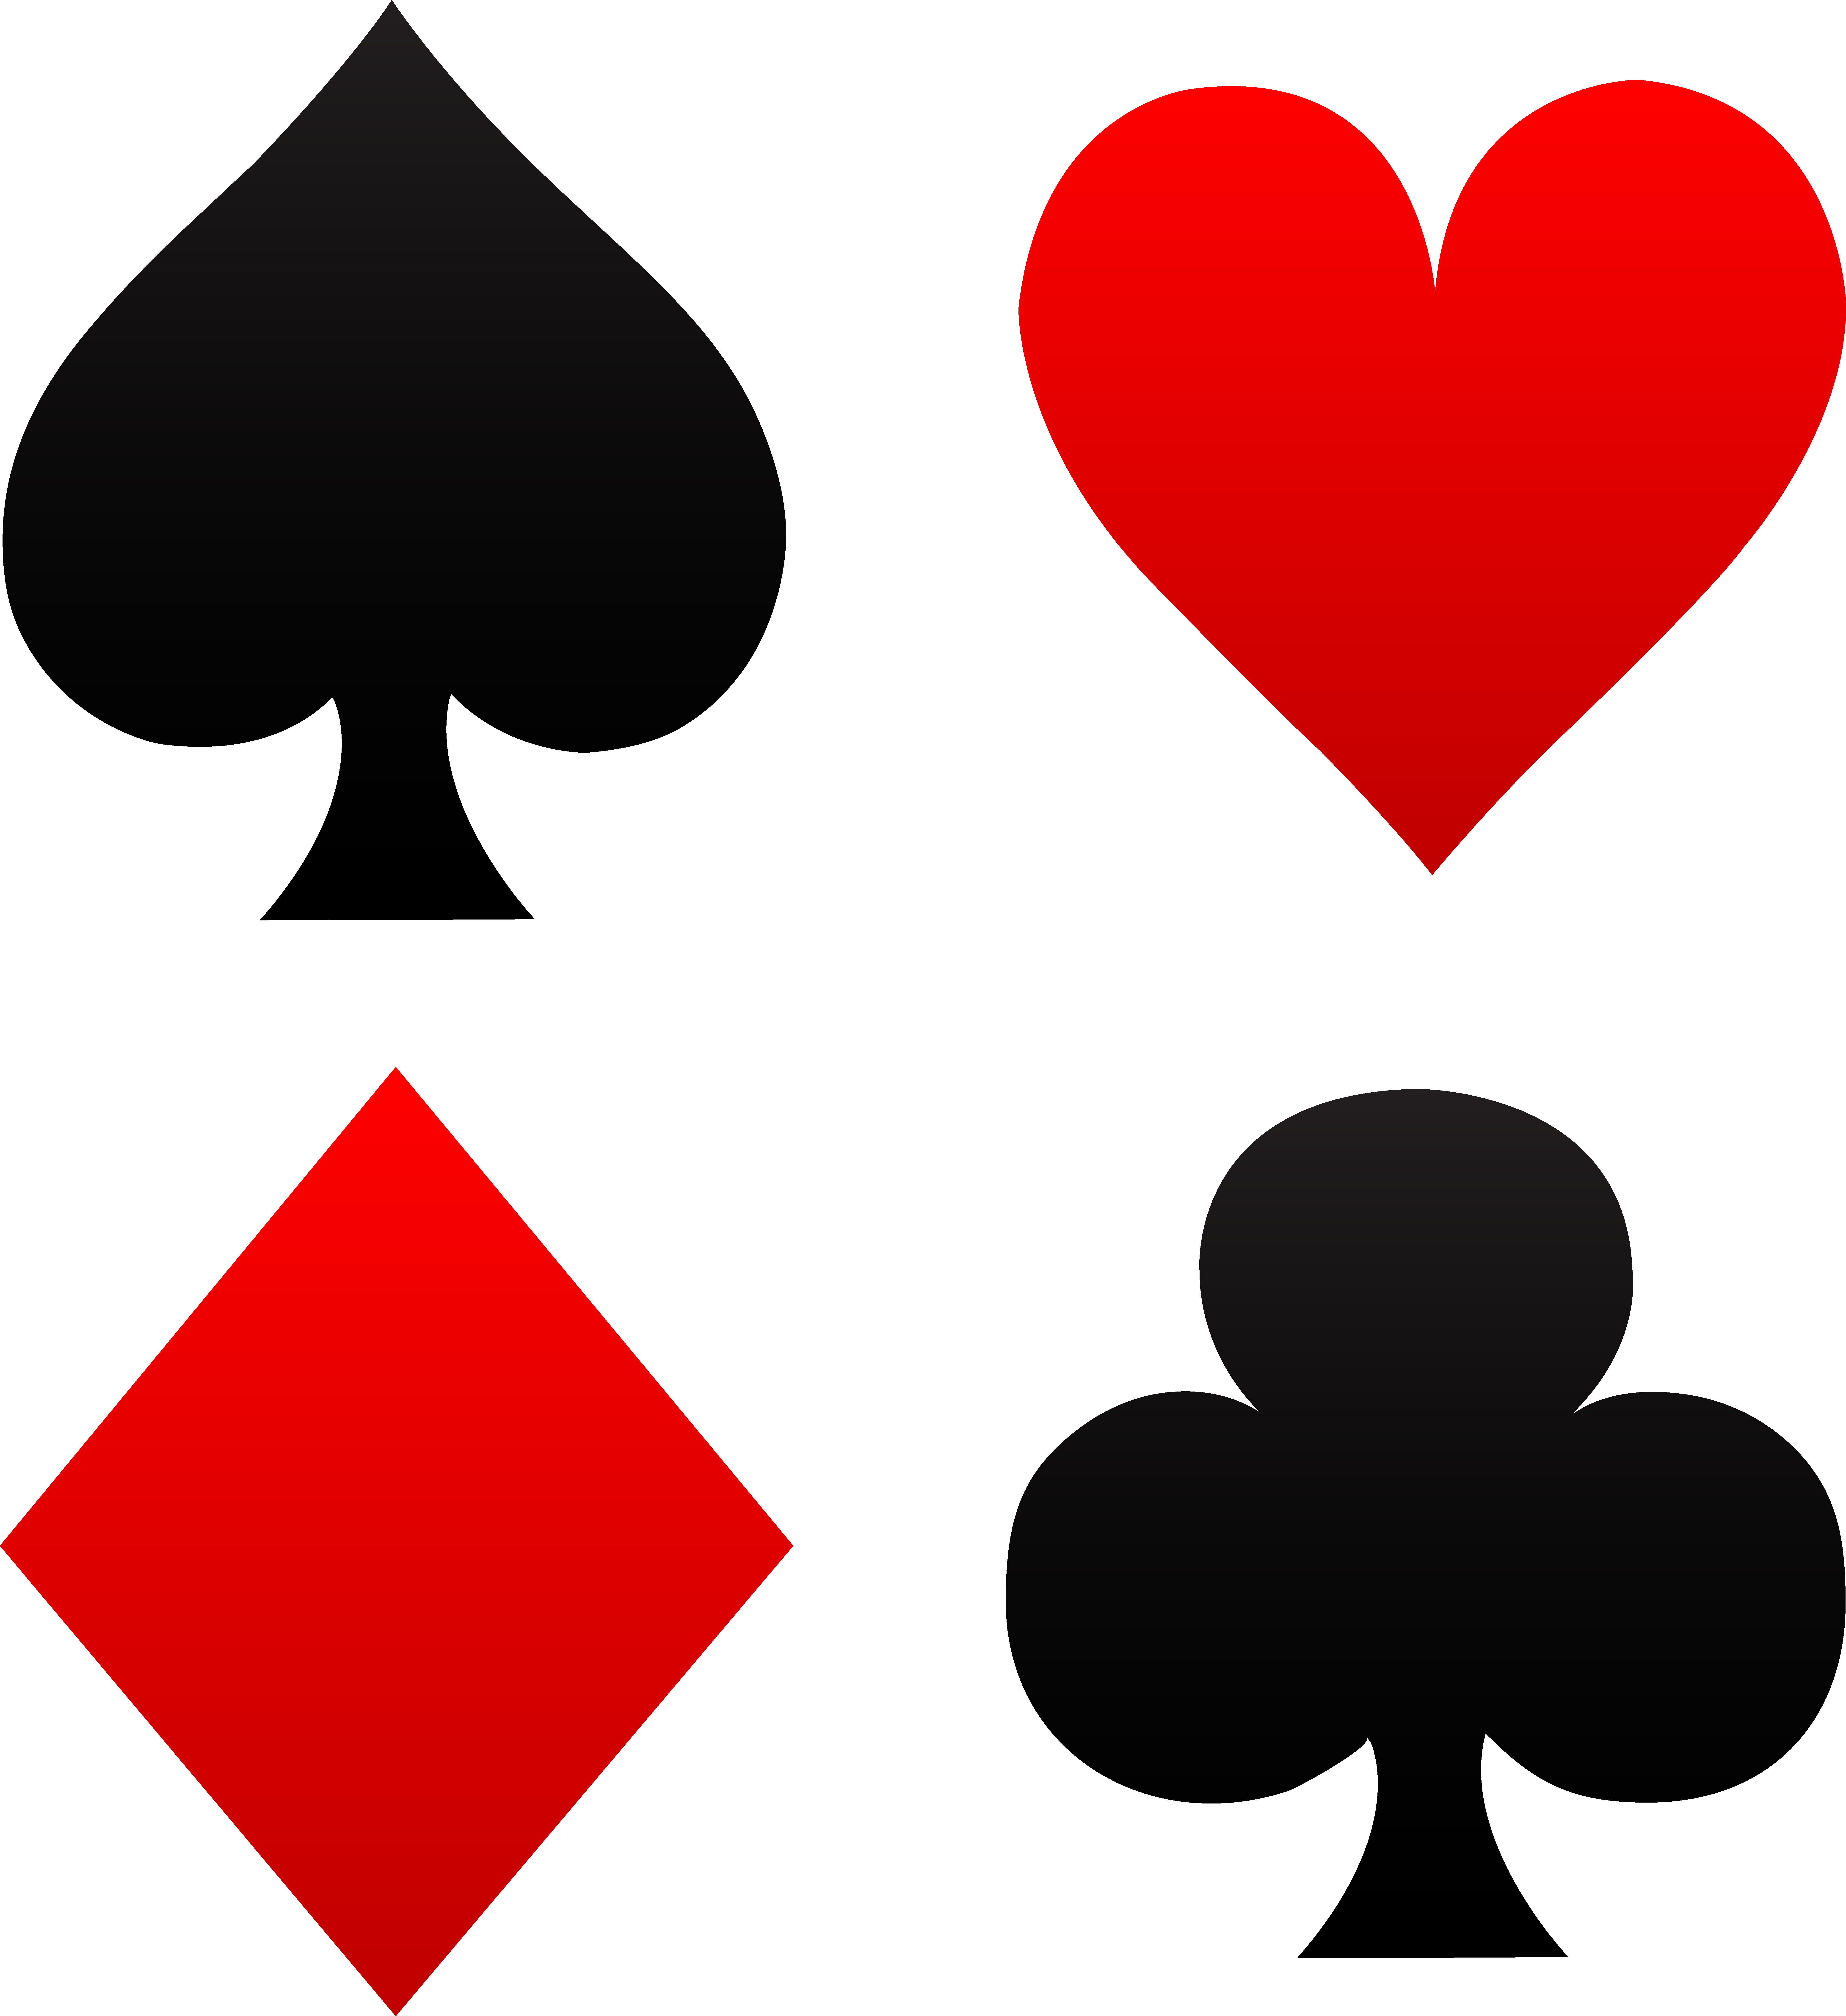 Playing symbols all things. Hearts clipart card